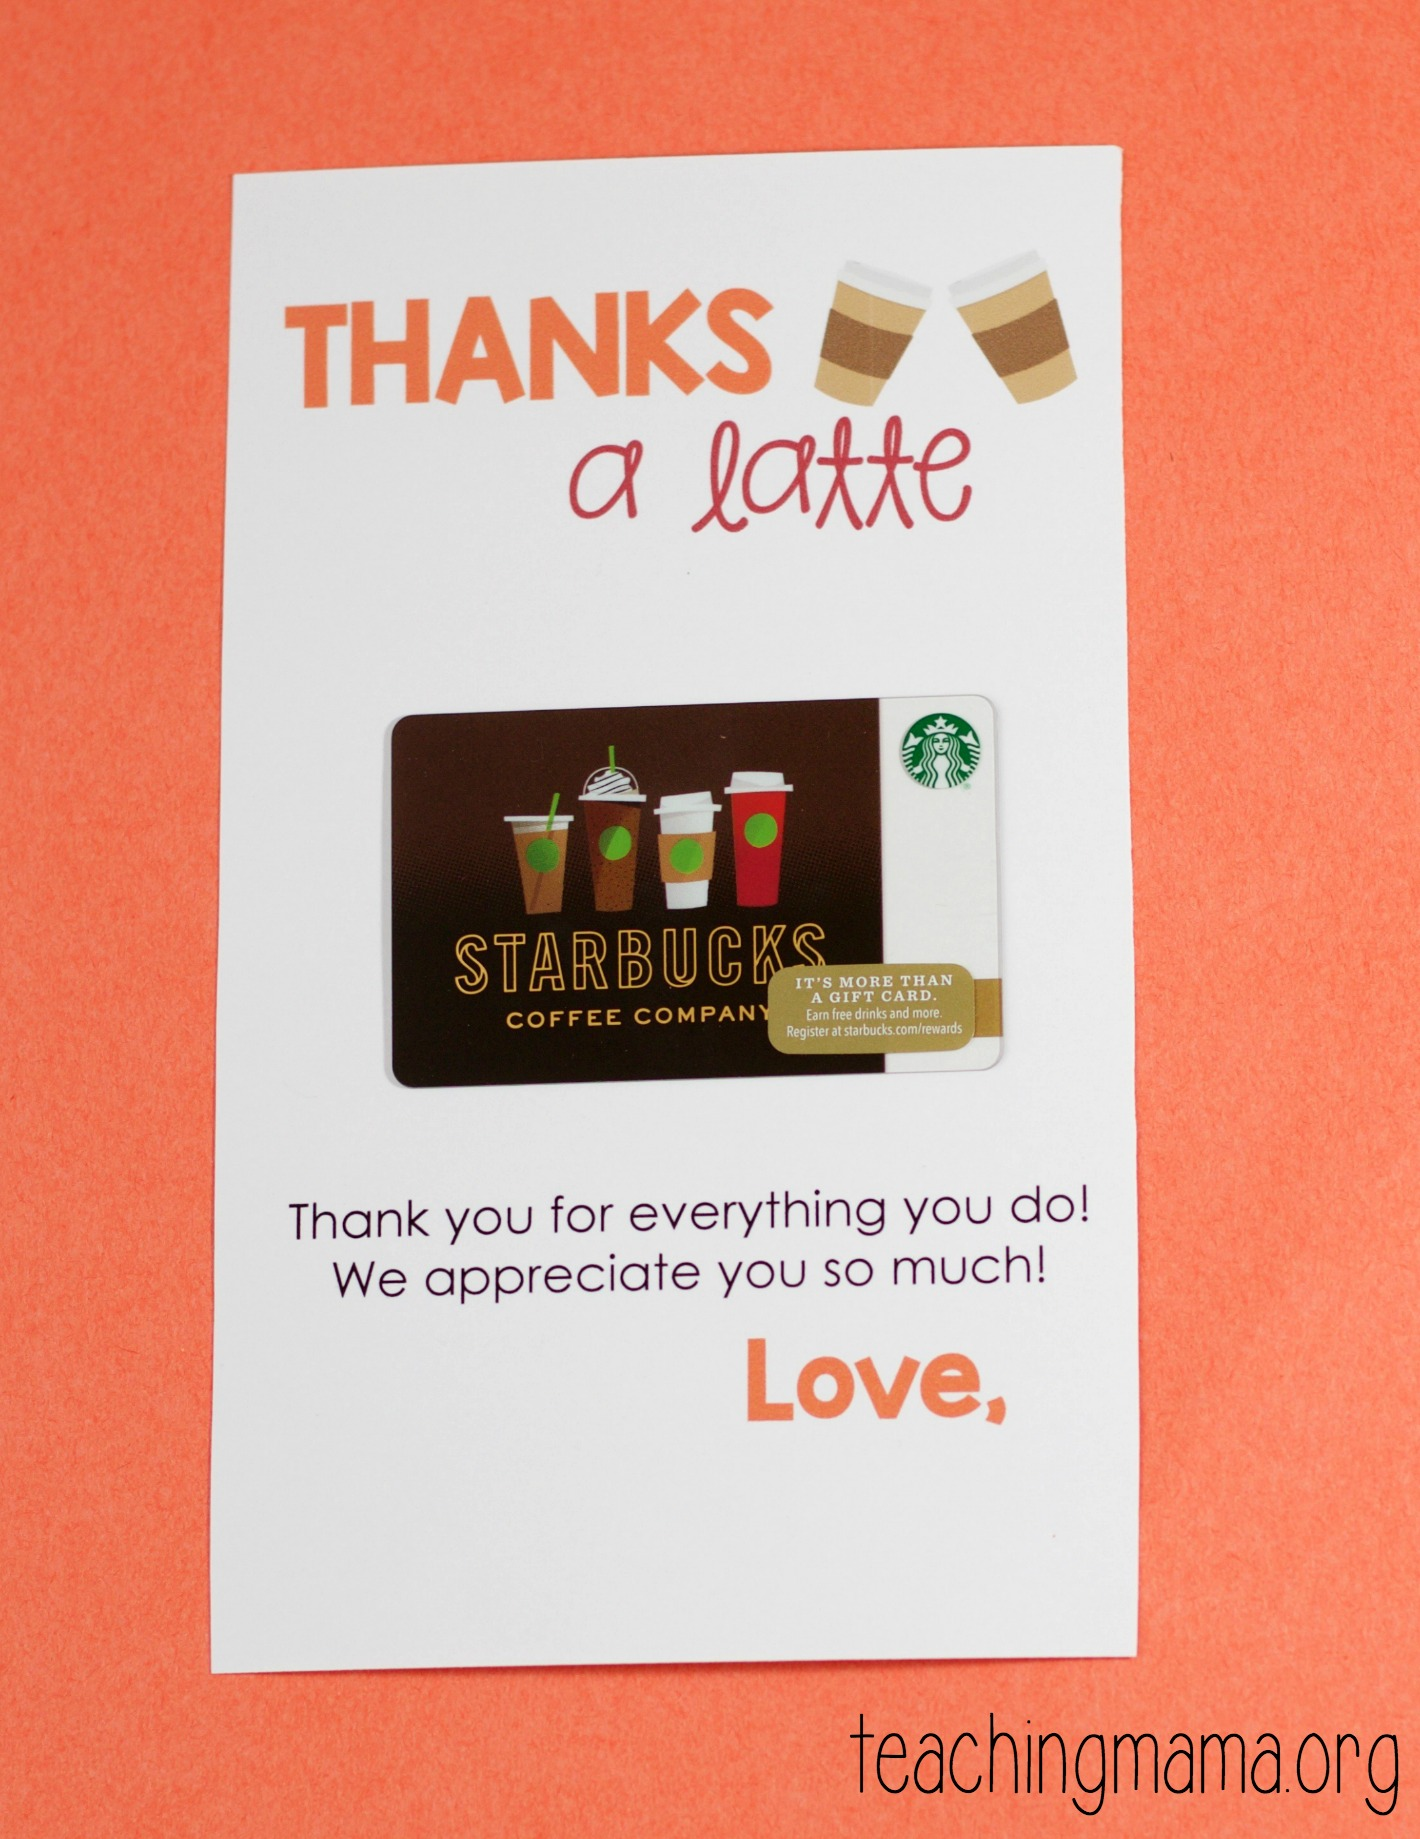 picture about Thanks a Latte Printable titled Owing a Latte Printable